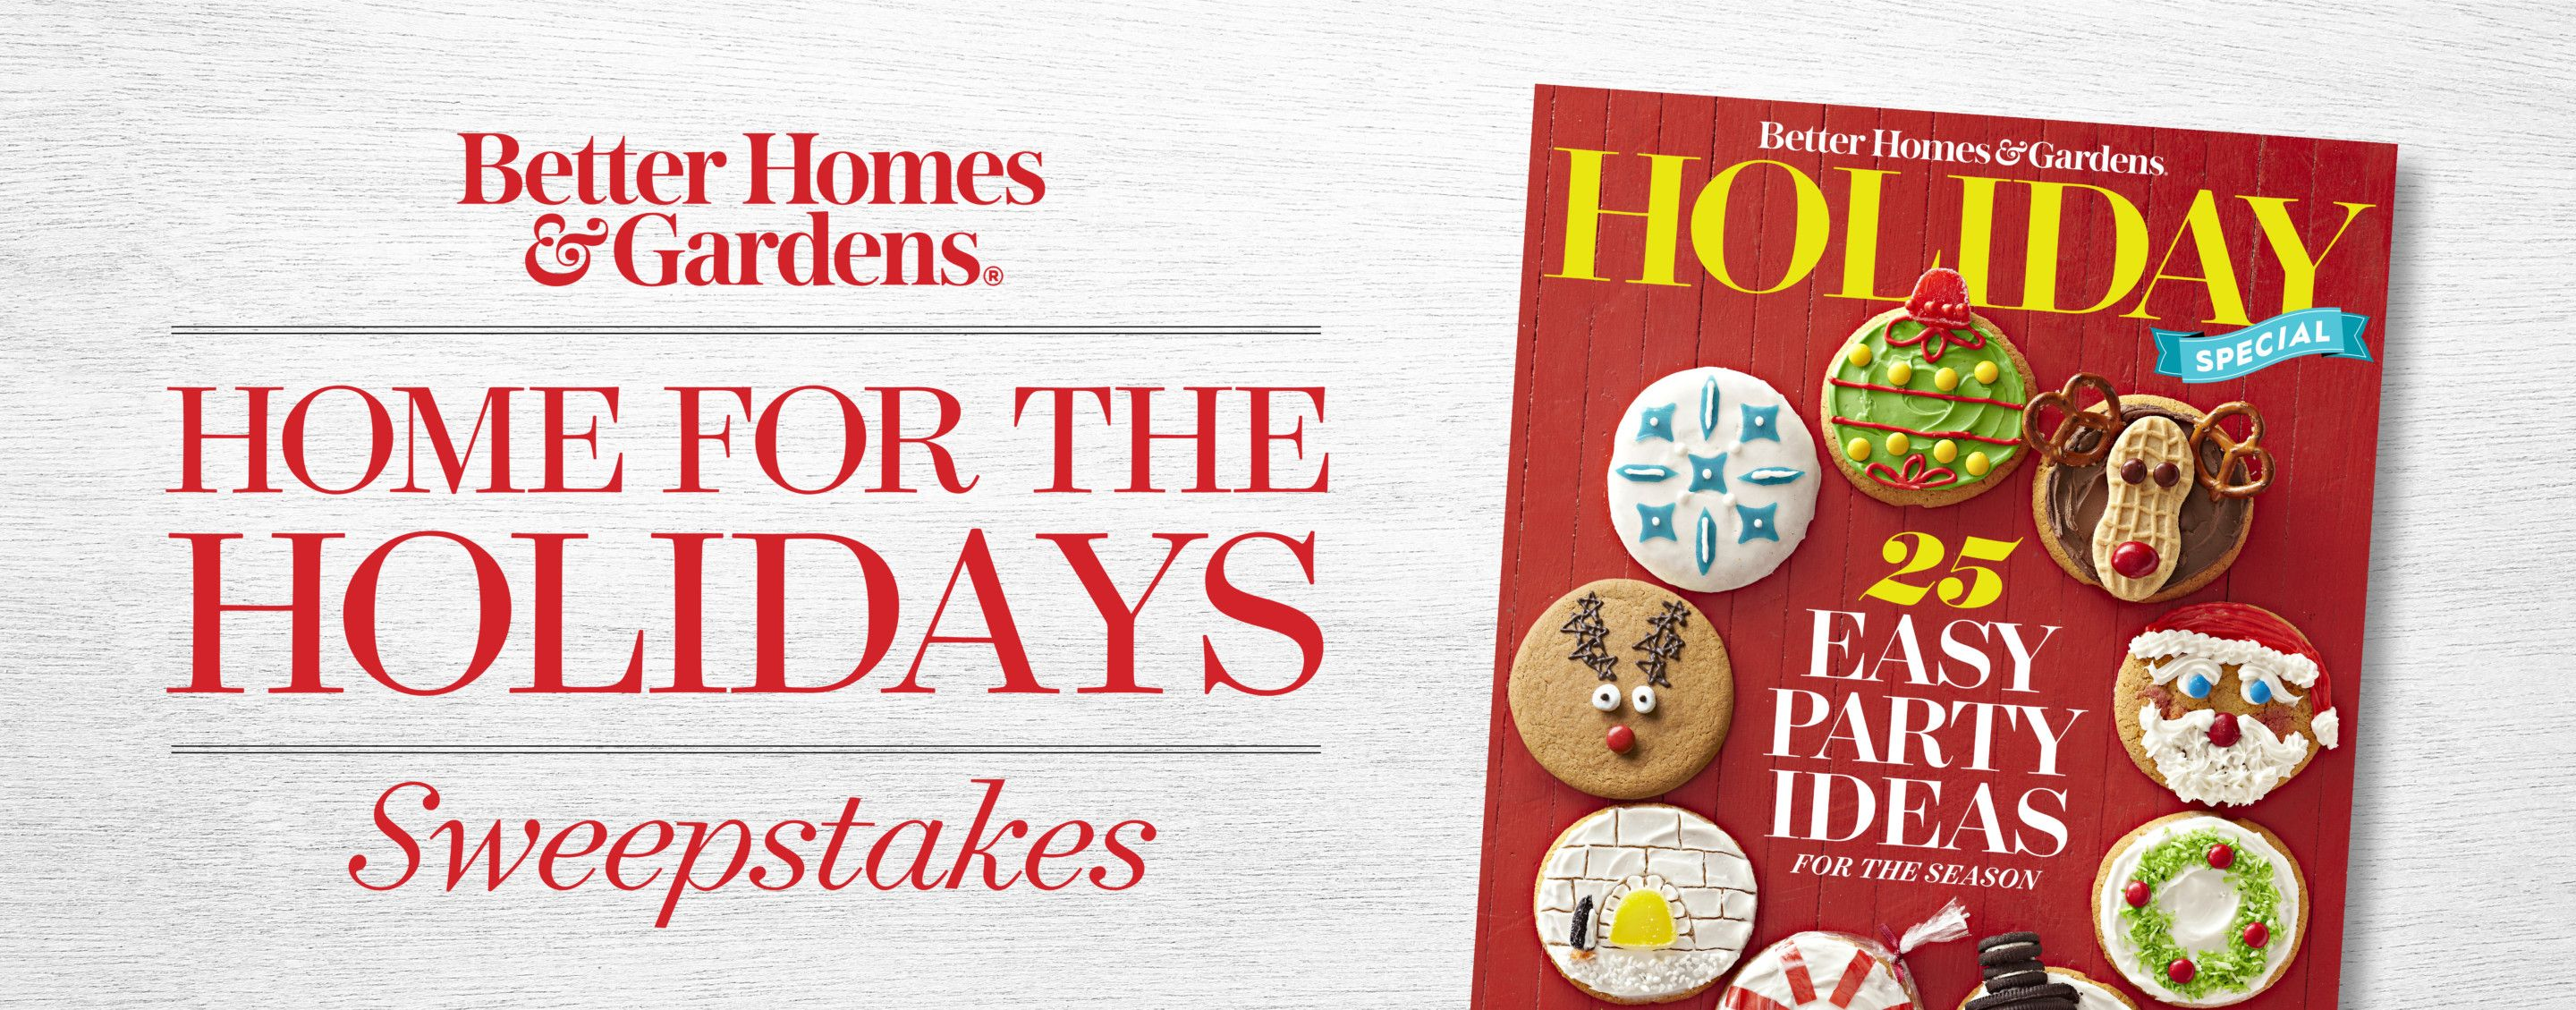 Bhg home for the holidays sweepstakes and giveaways